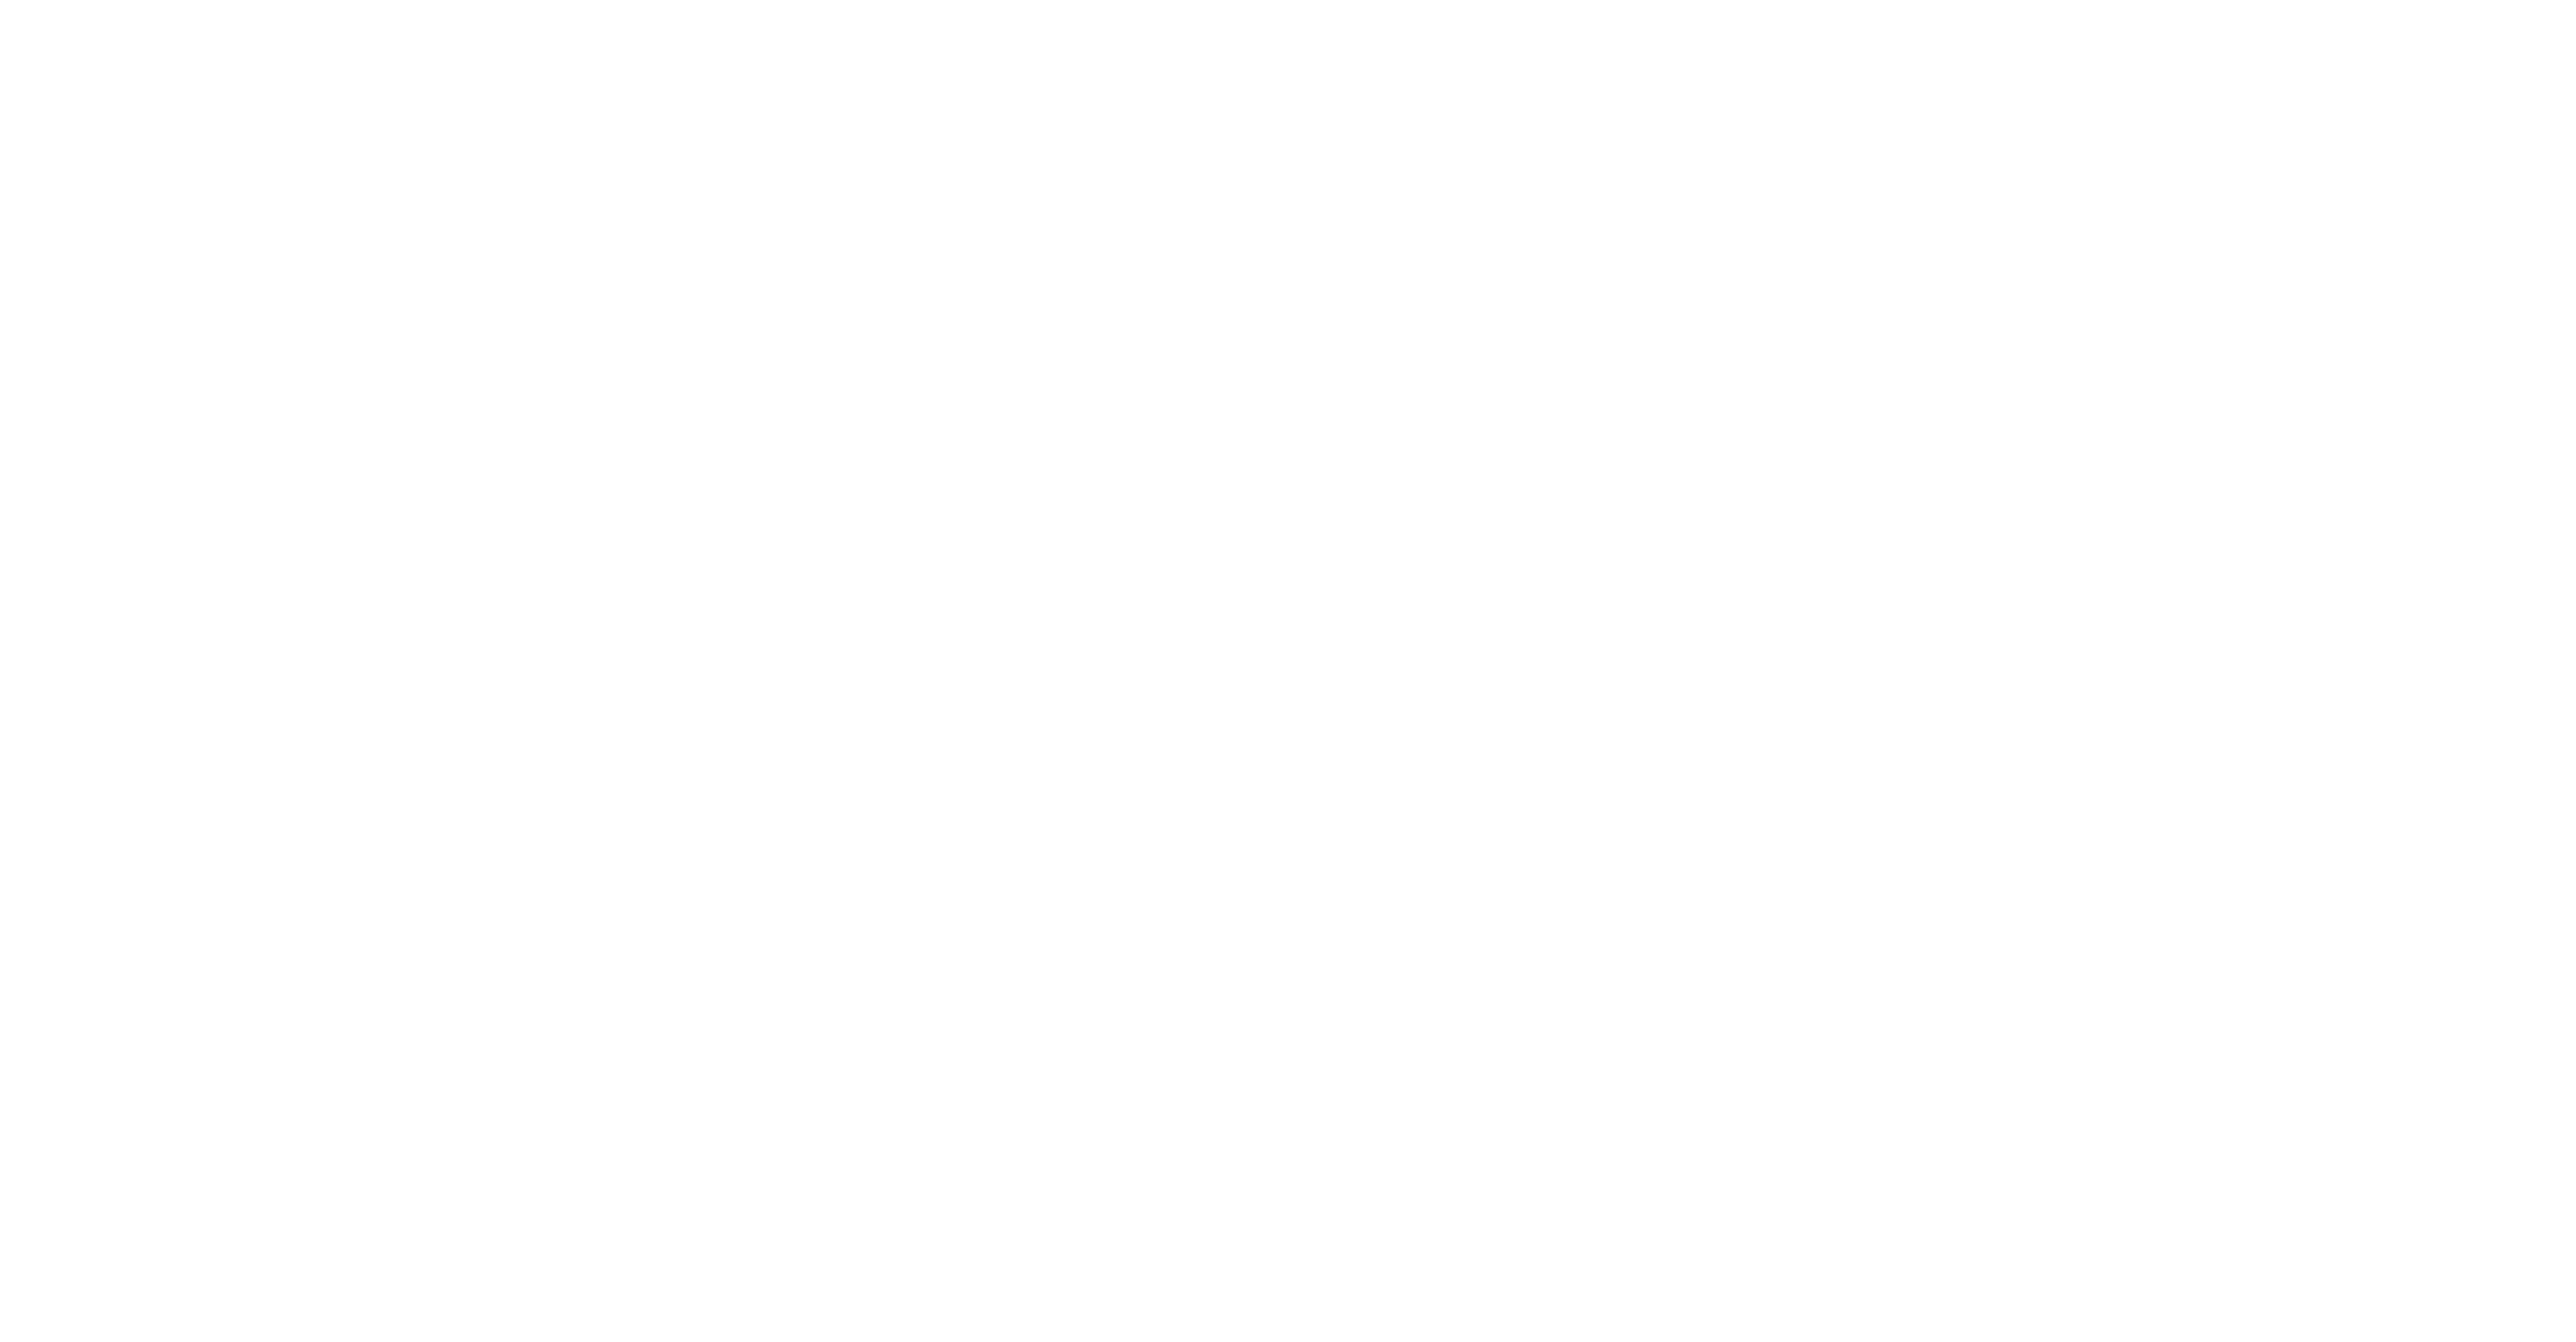 The Credit Repair Team